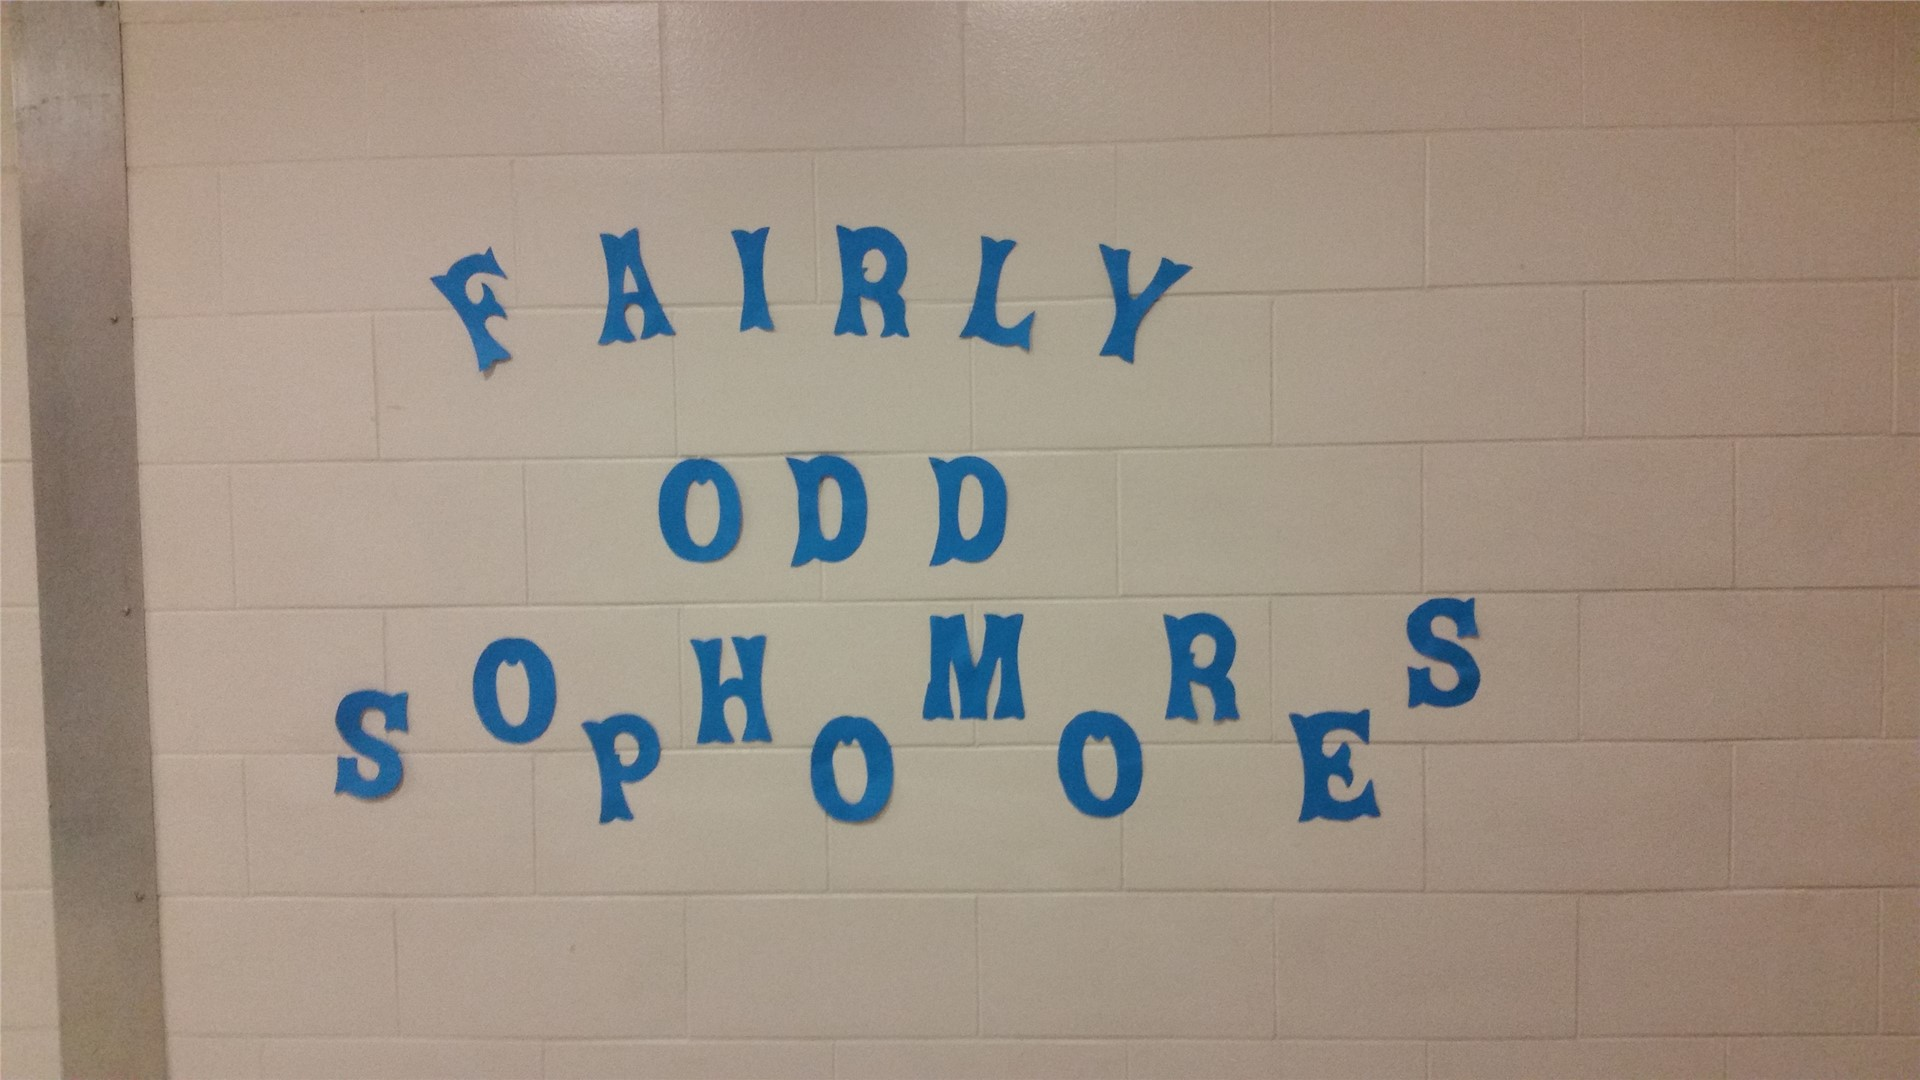 Class of 2018 Homecoming Hallway decorating